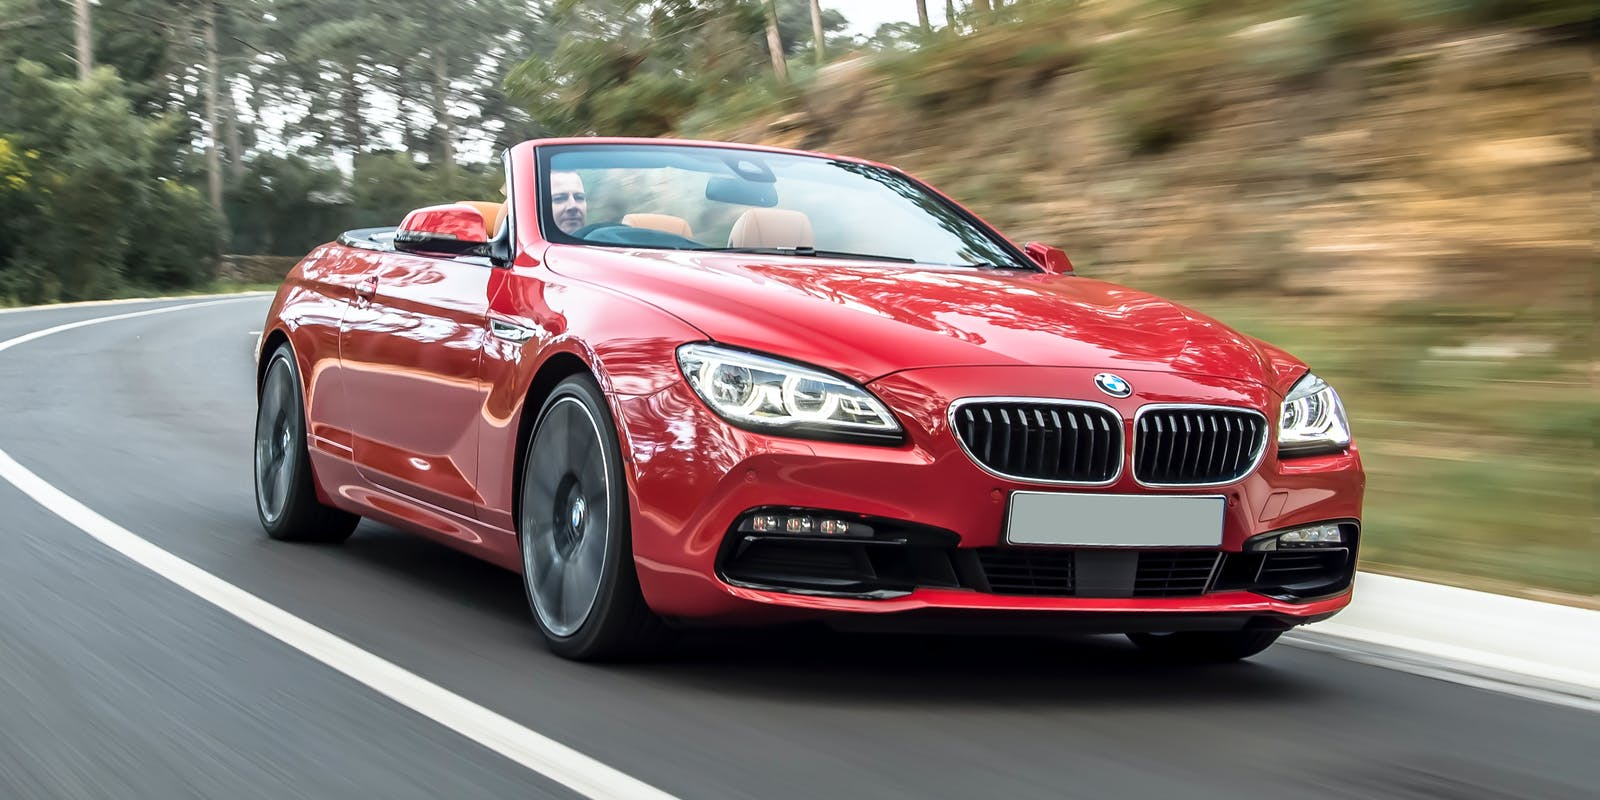 Bmw 650i 0 60 6 Series Convertible Review Carwow